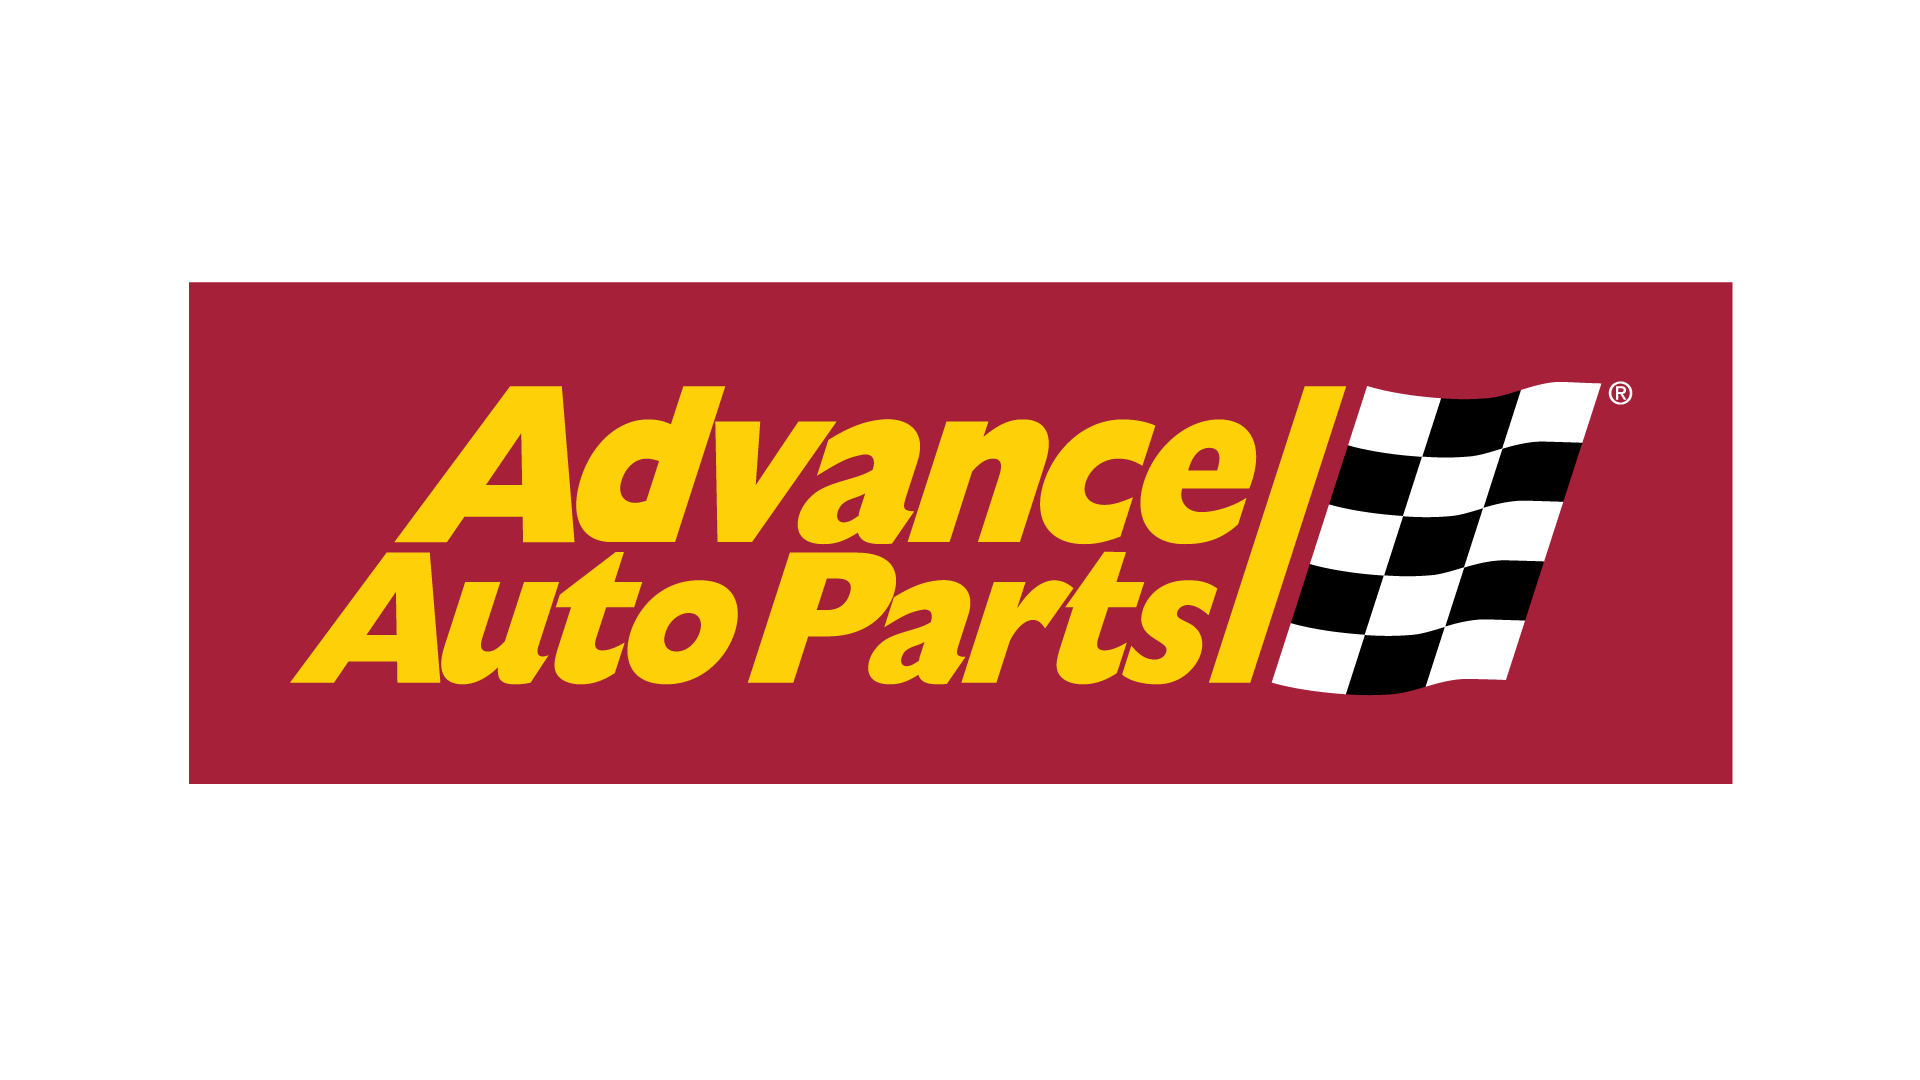 Advance Auto Parts Number >> Advance Auto Parts Inc Nyse Aap Rings The Nyse Opening Bell